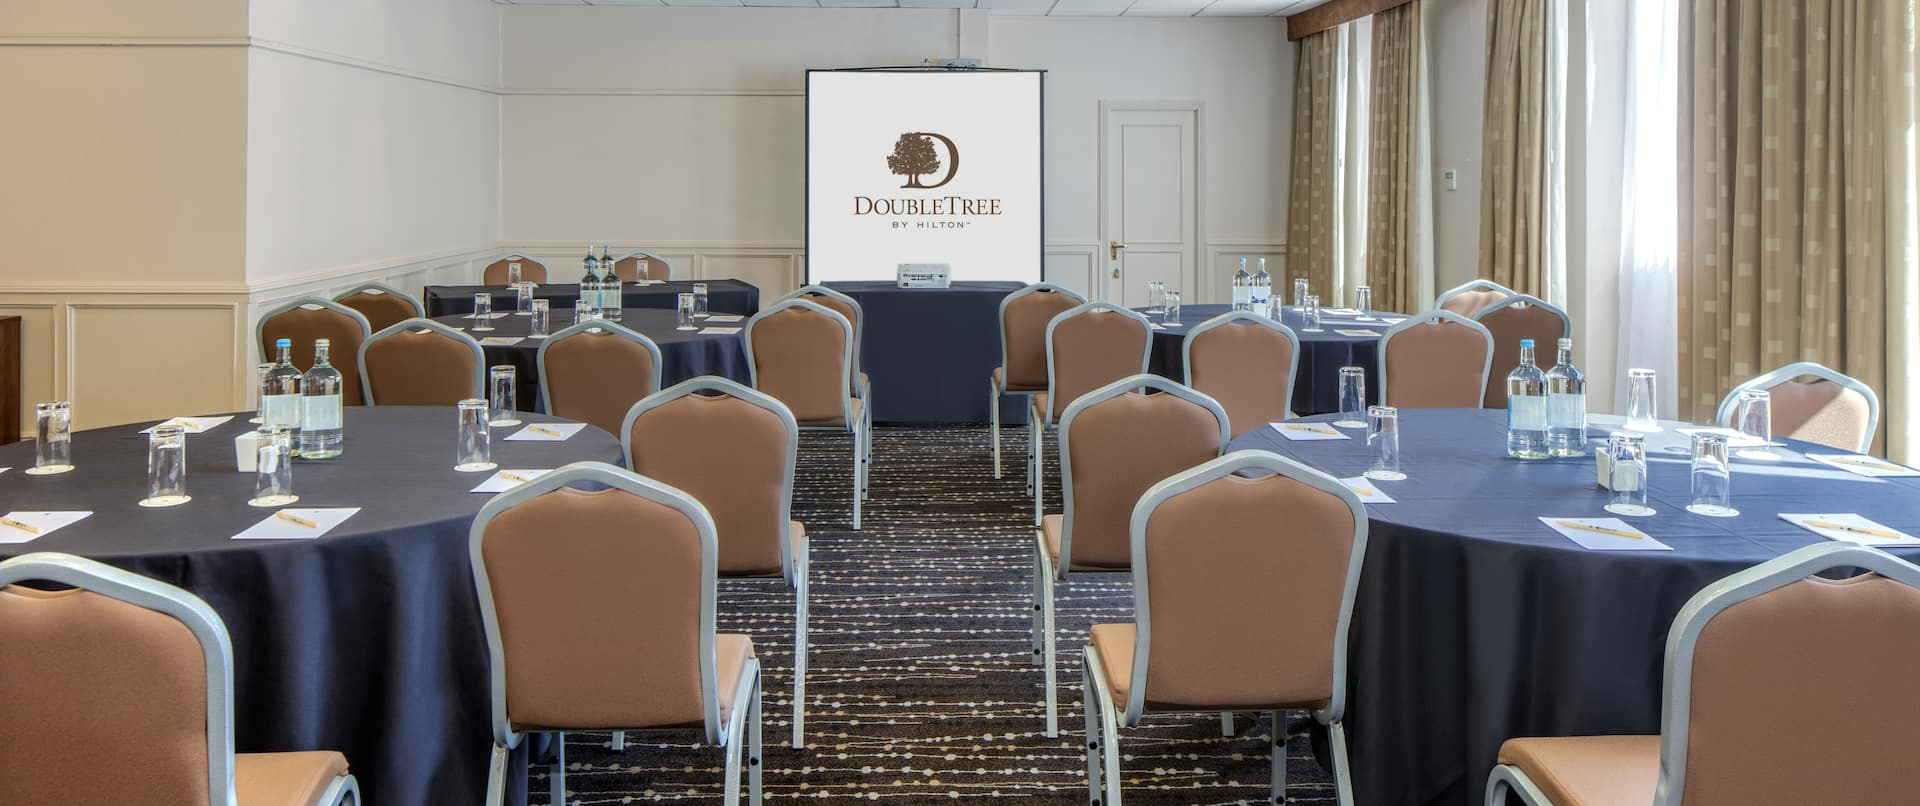 Table With Projector in Front of Presentation Screen, and Water Bottles and Glasses on Round Dining Tables With Black Linens in Park Suite